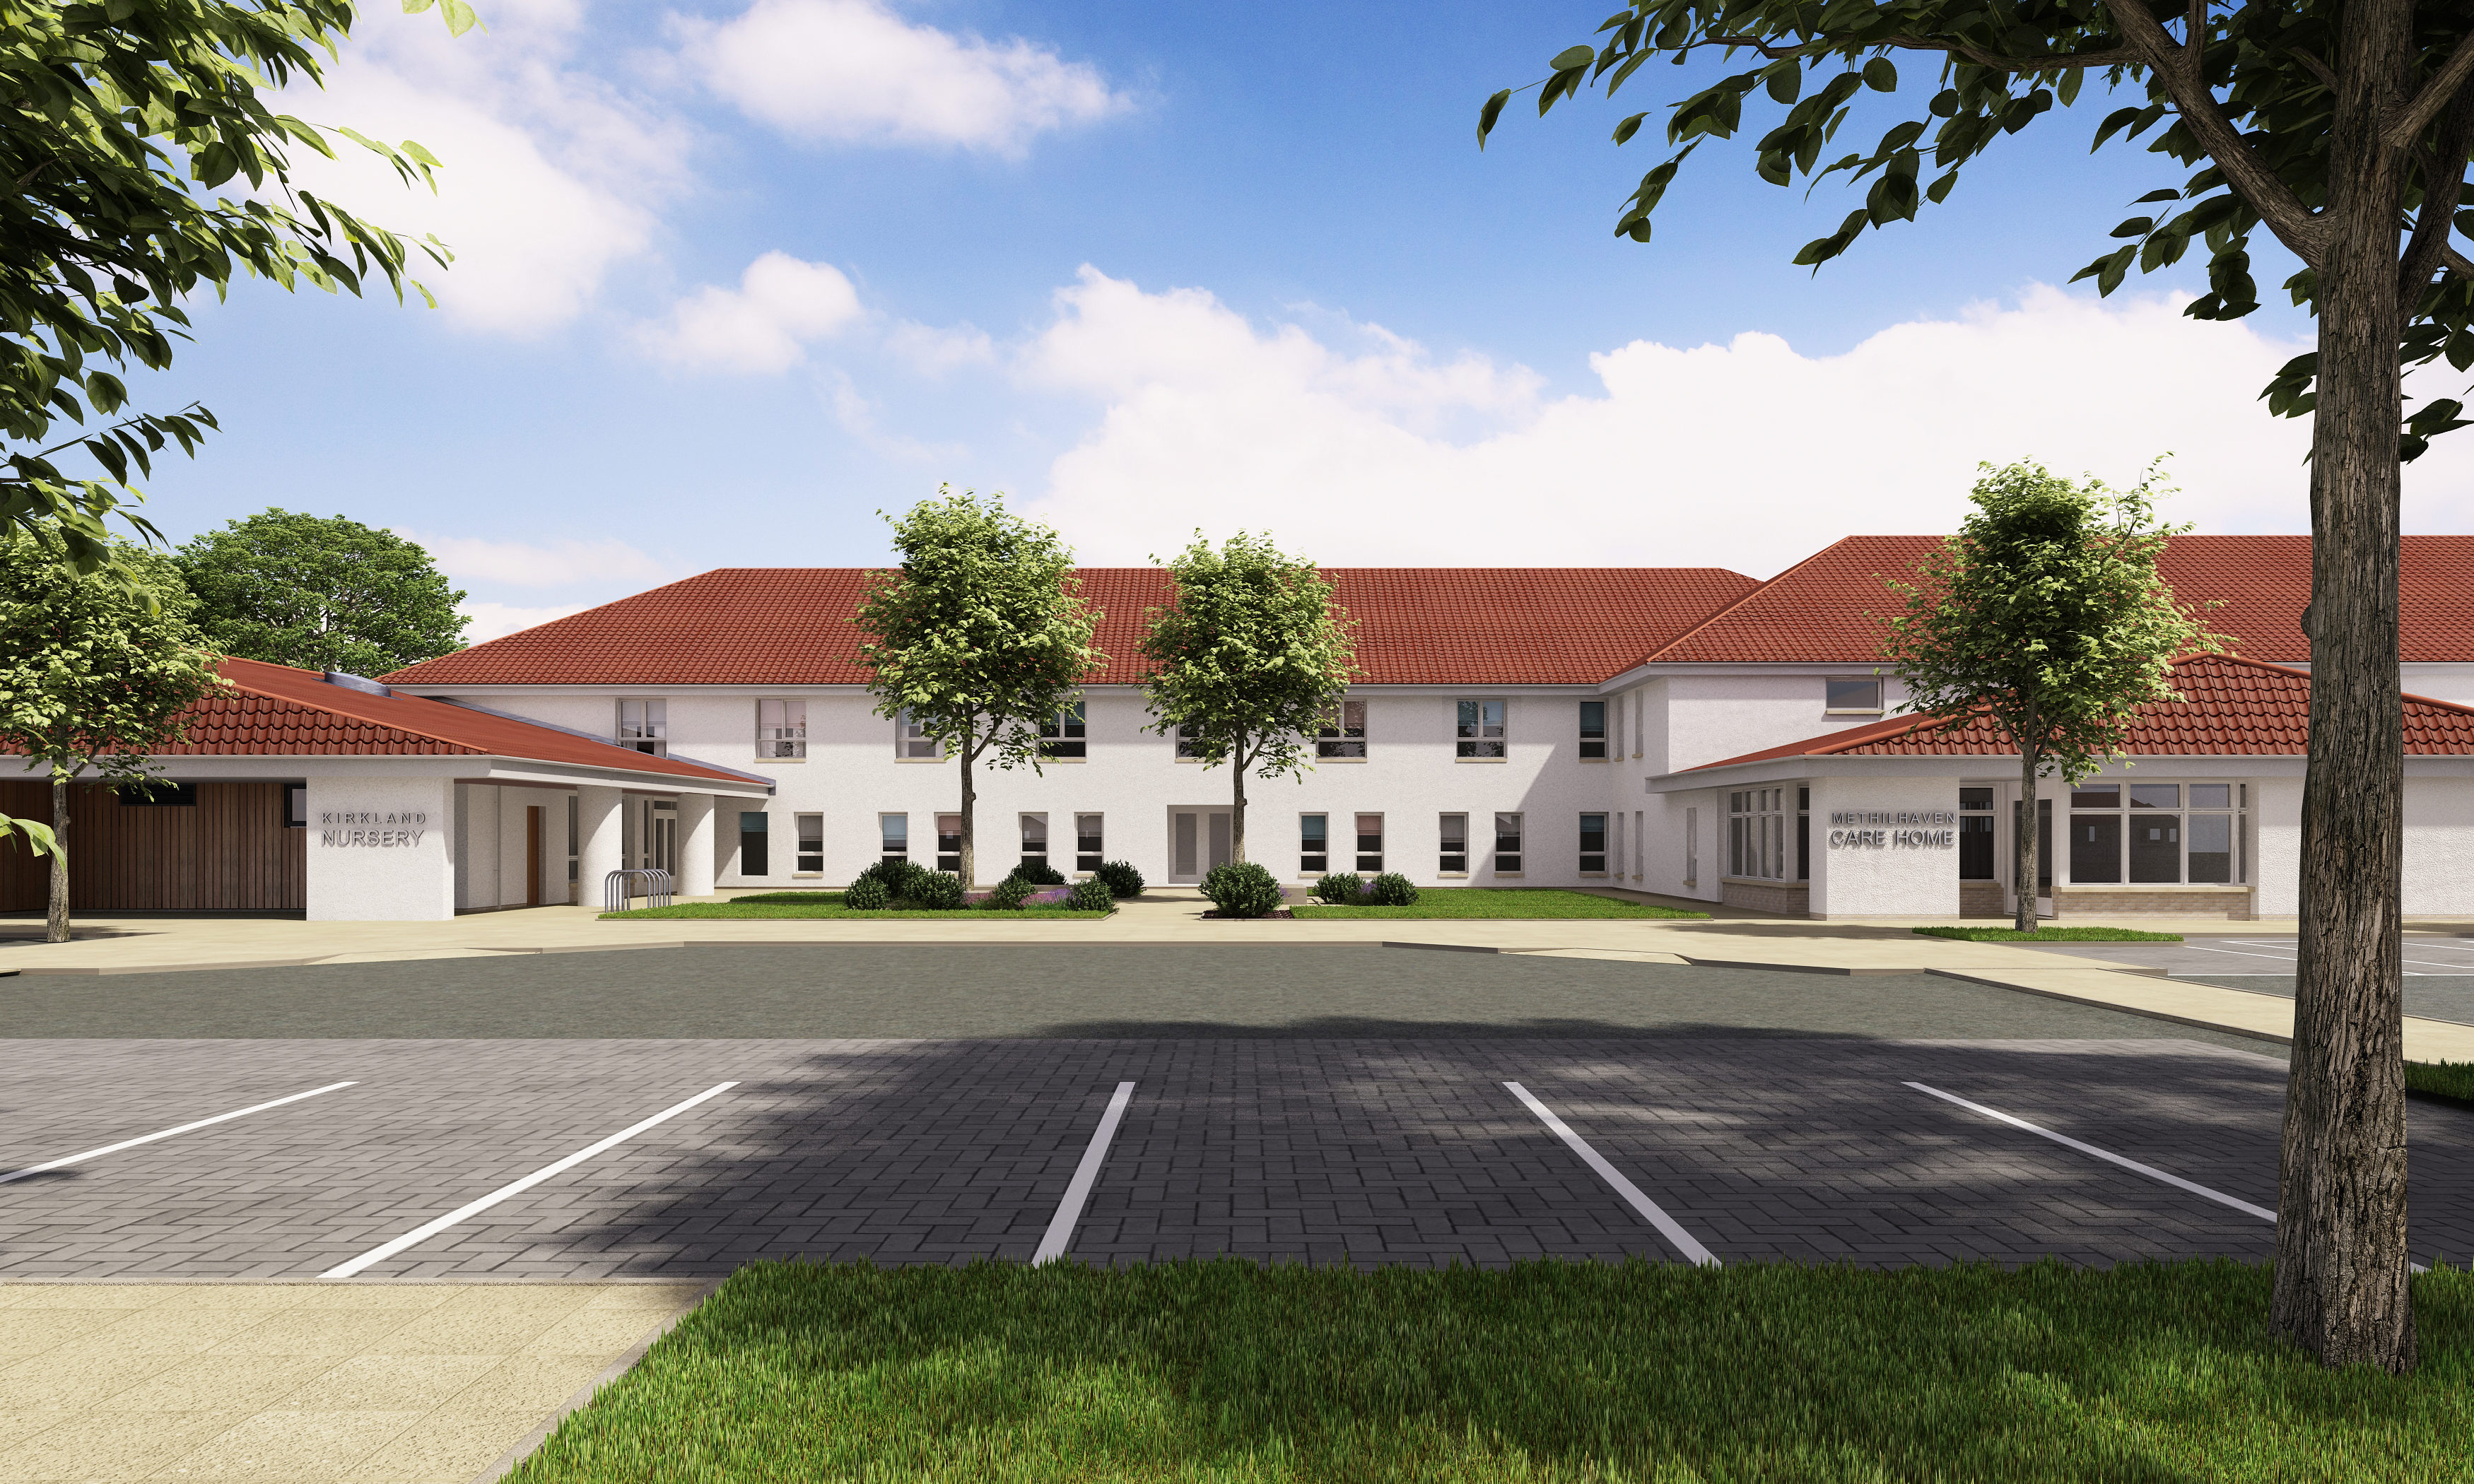 An artists impression of how the care home and nursery will look